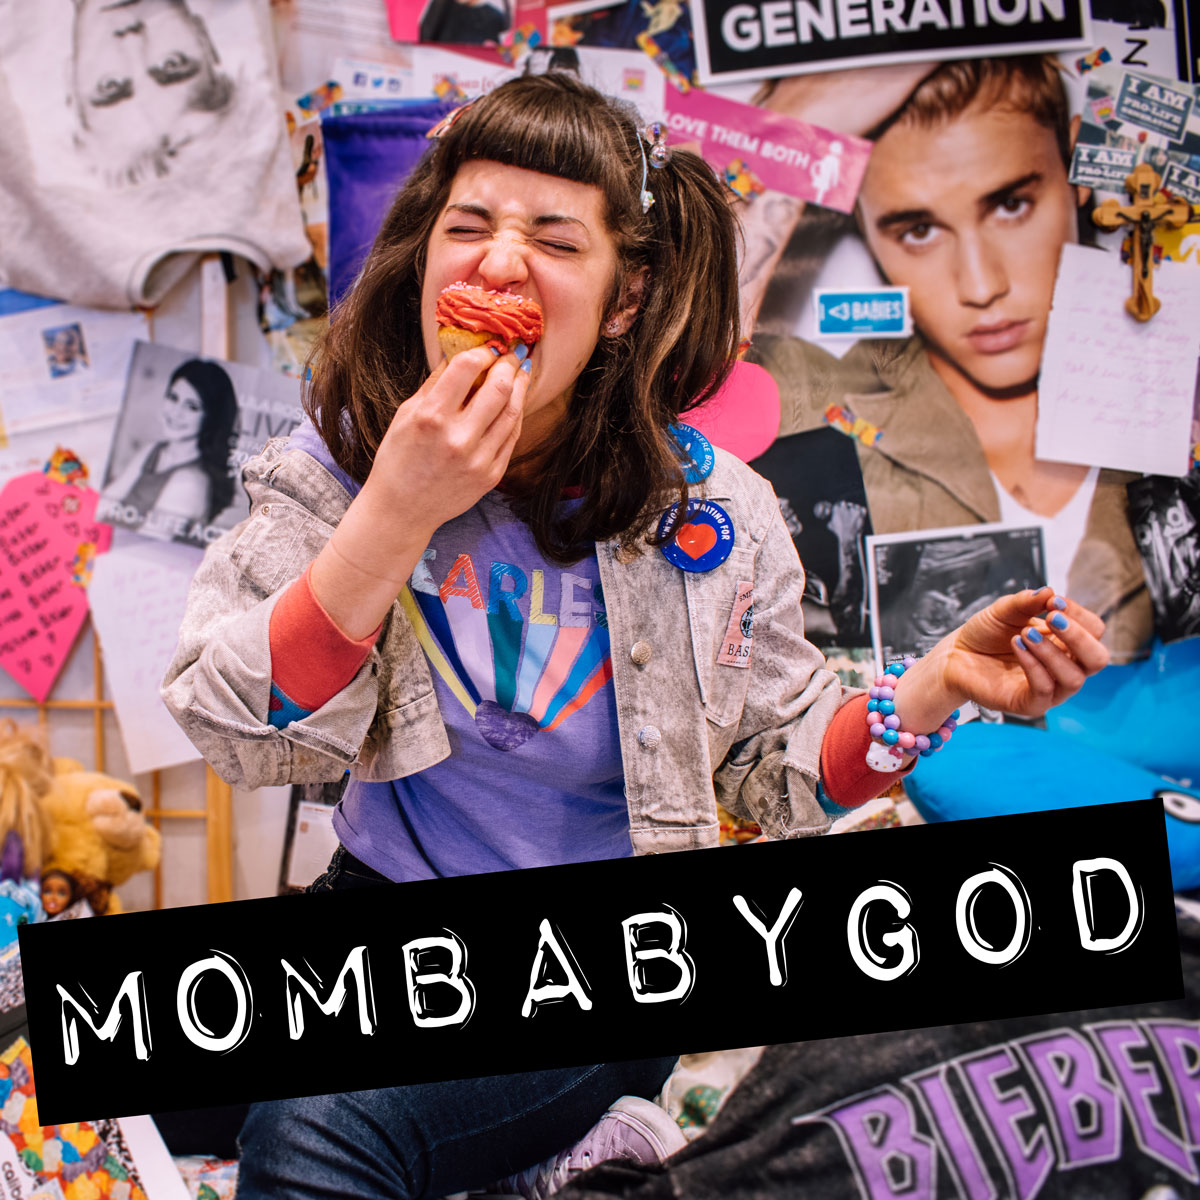 MOM BABY GOD by Madeline Joey Rose